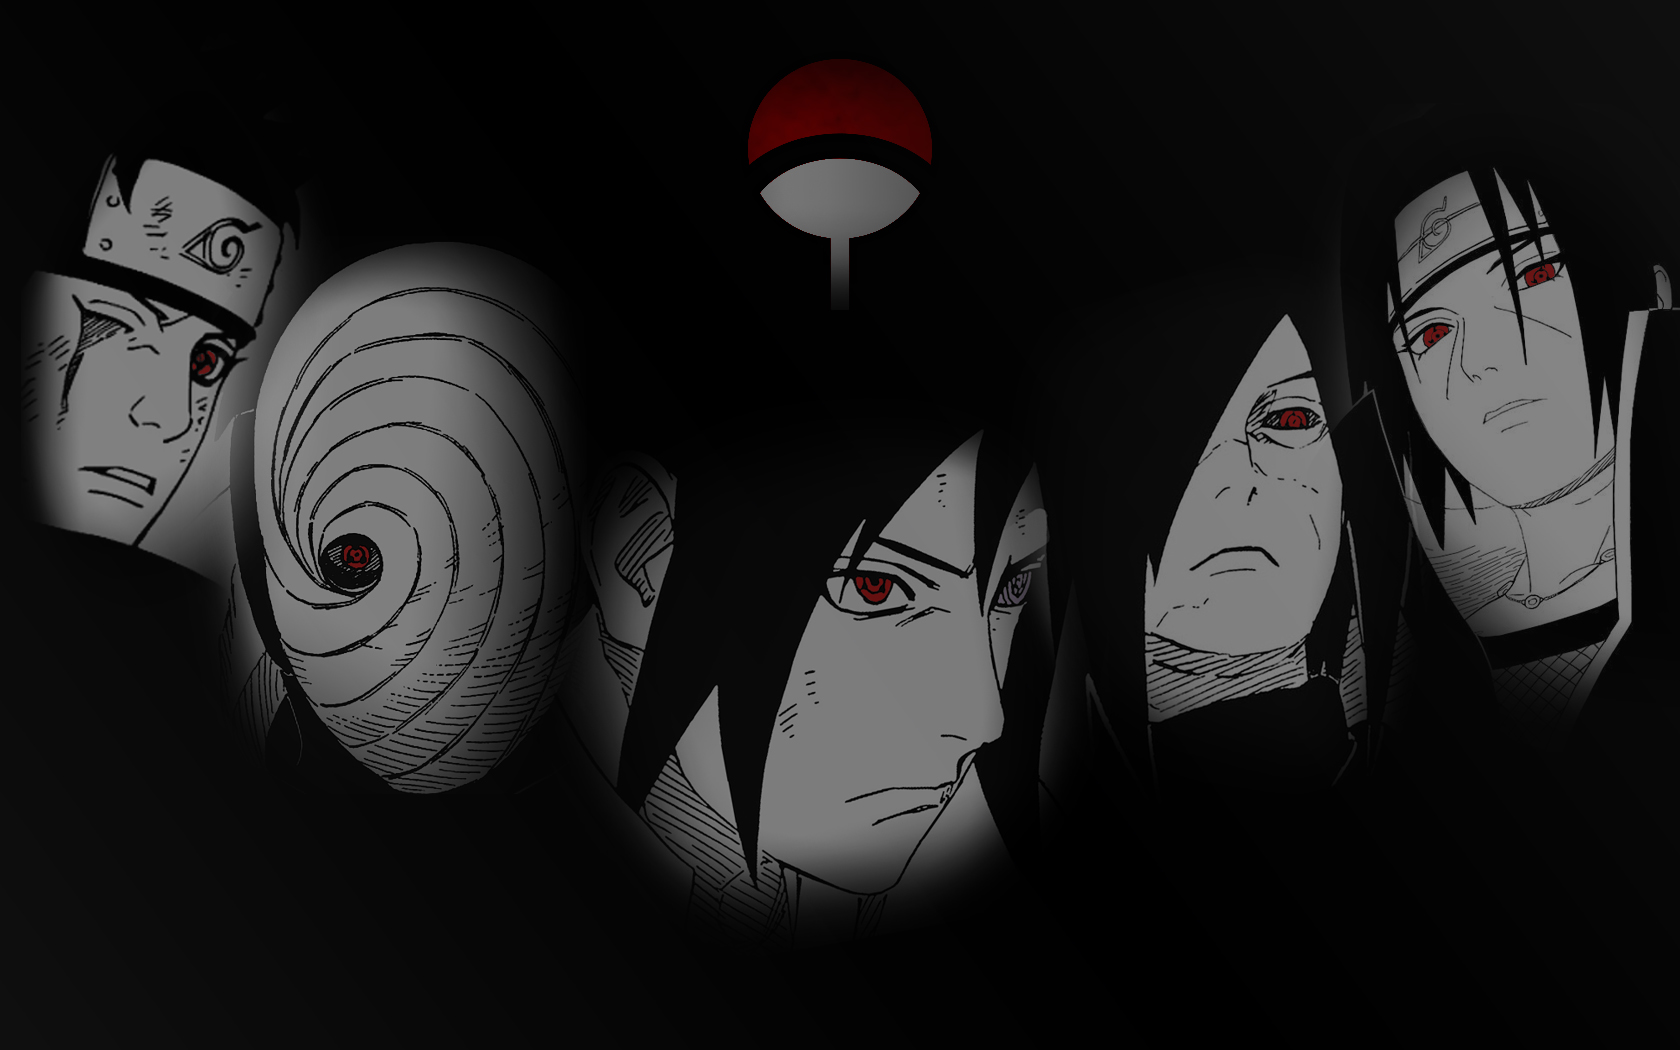 An Uchiha Clan Wallpaper I Made Naruto 1680x1050